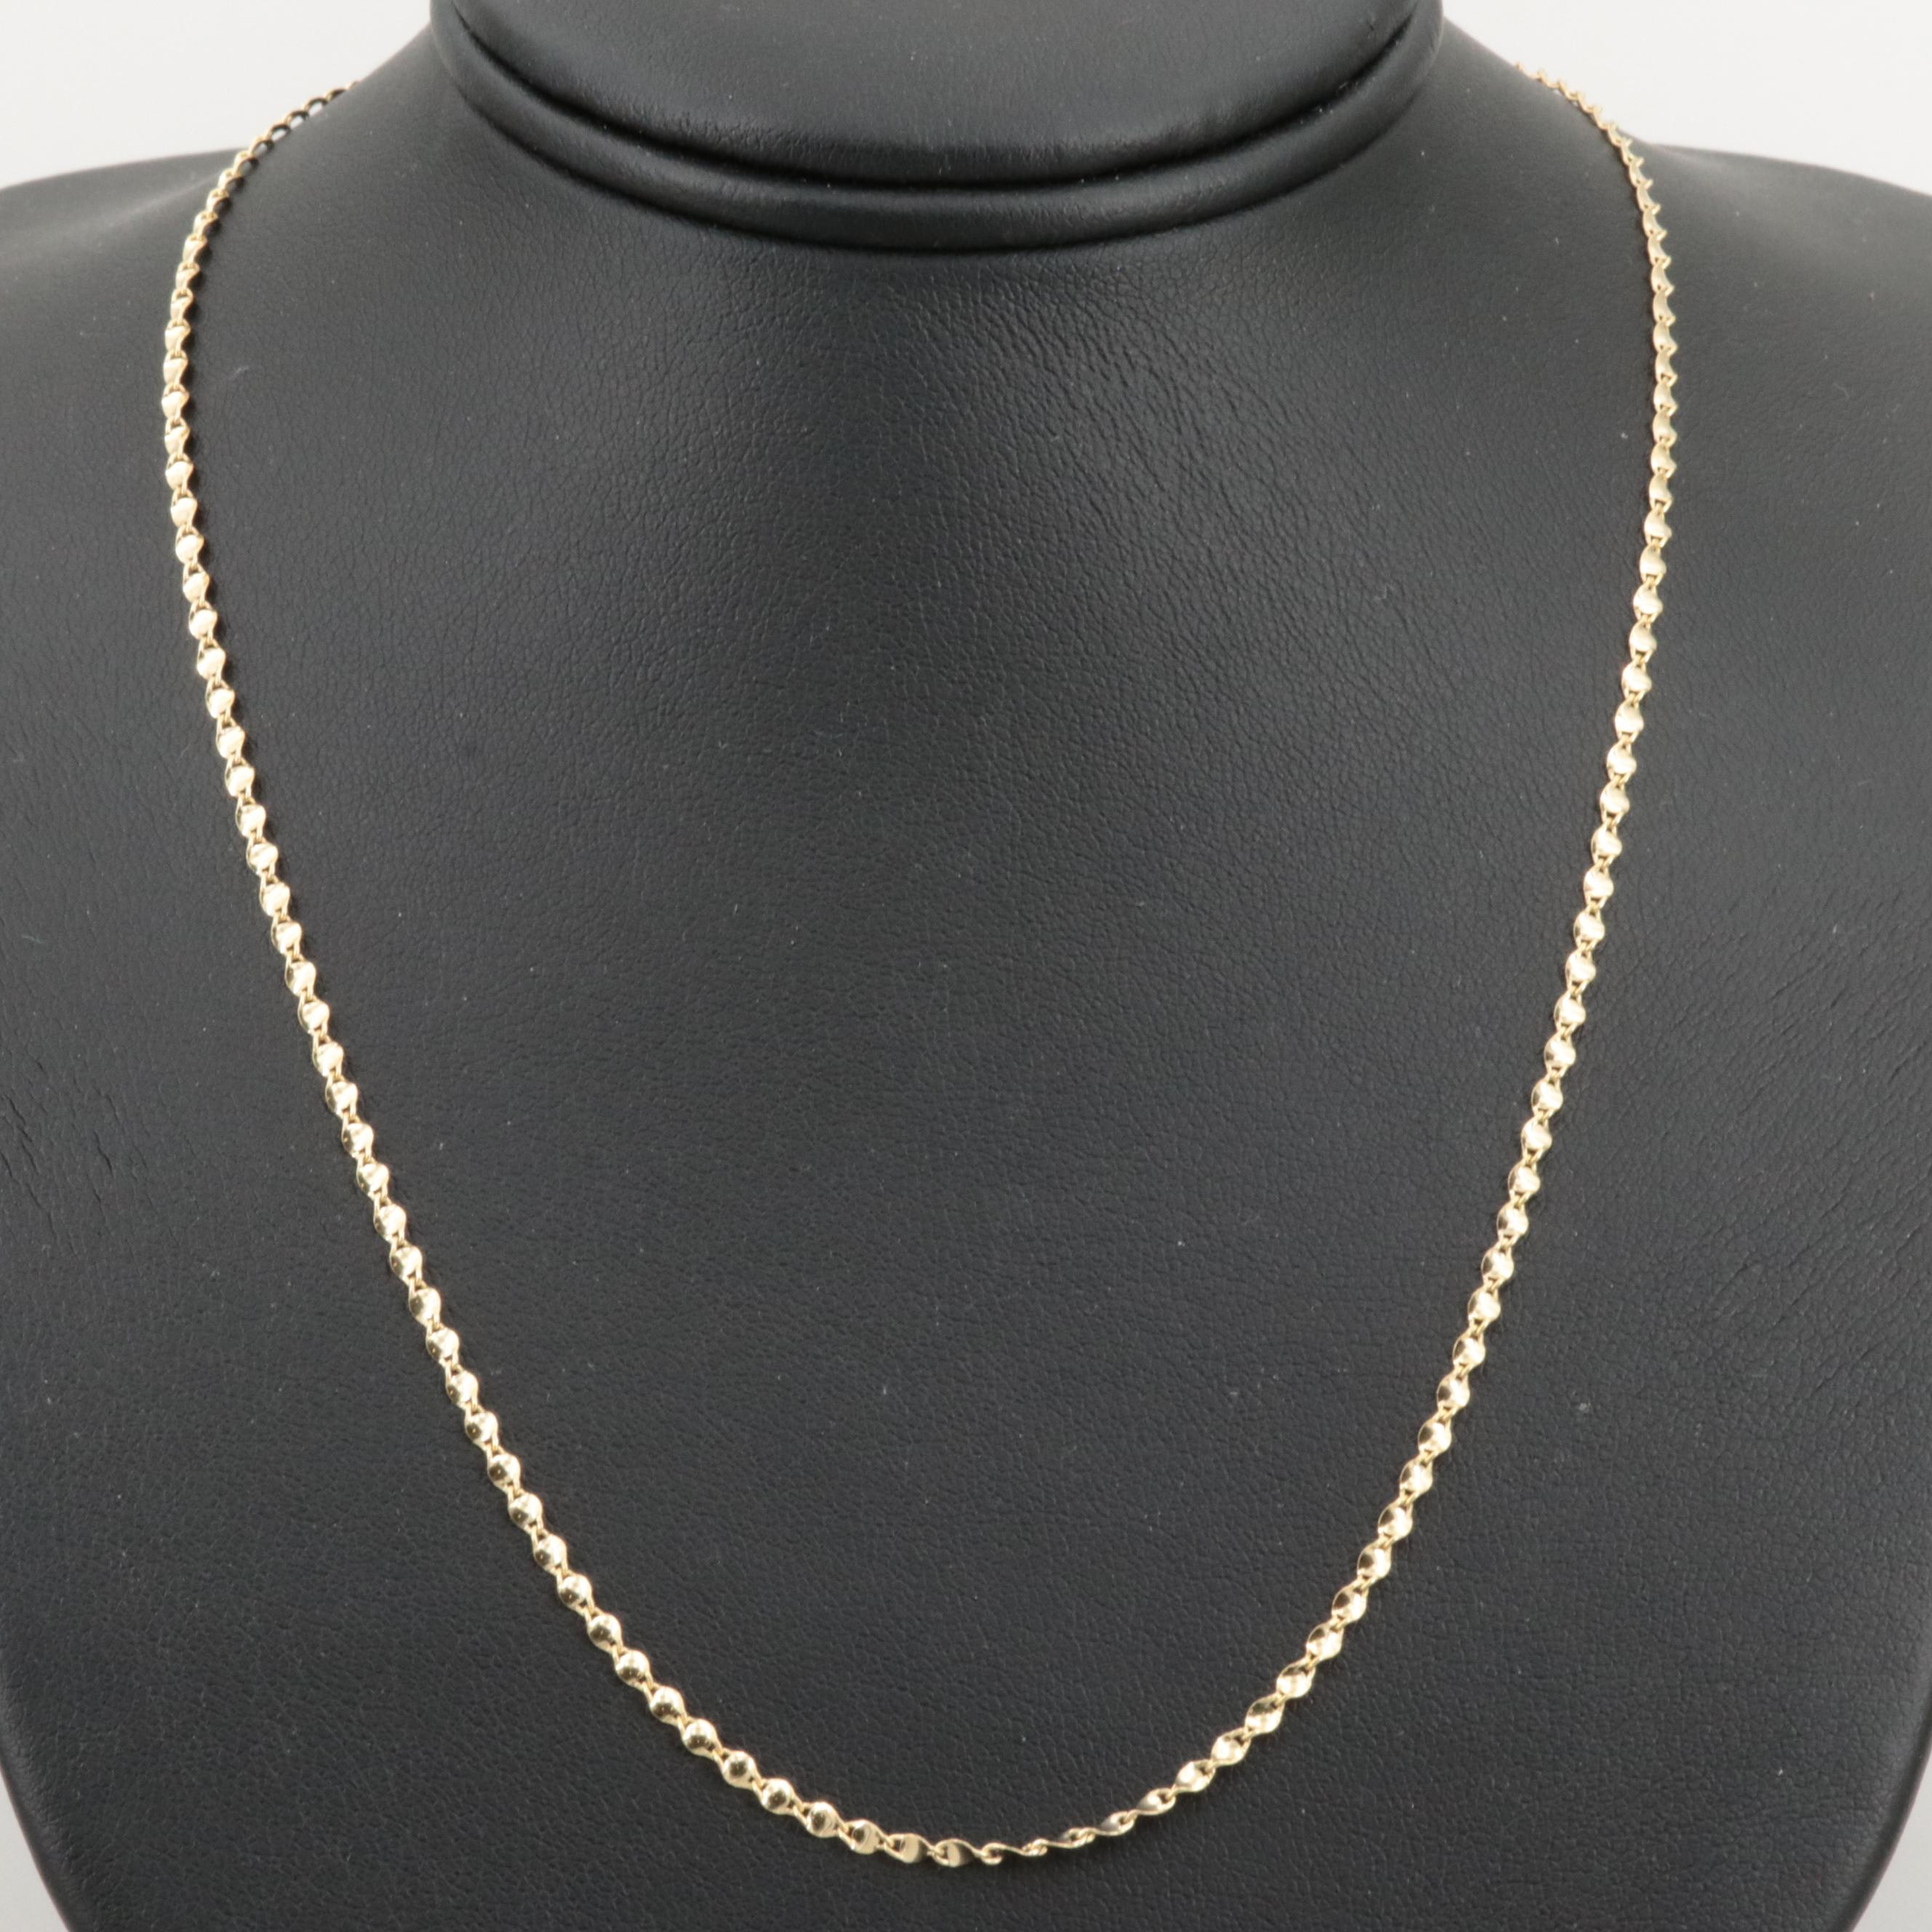 10K Yellow Gold Fancy Link Chain Necklace